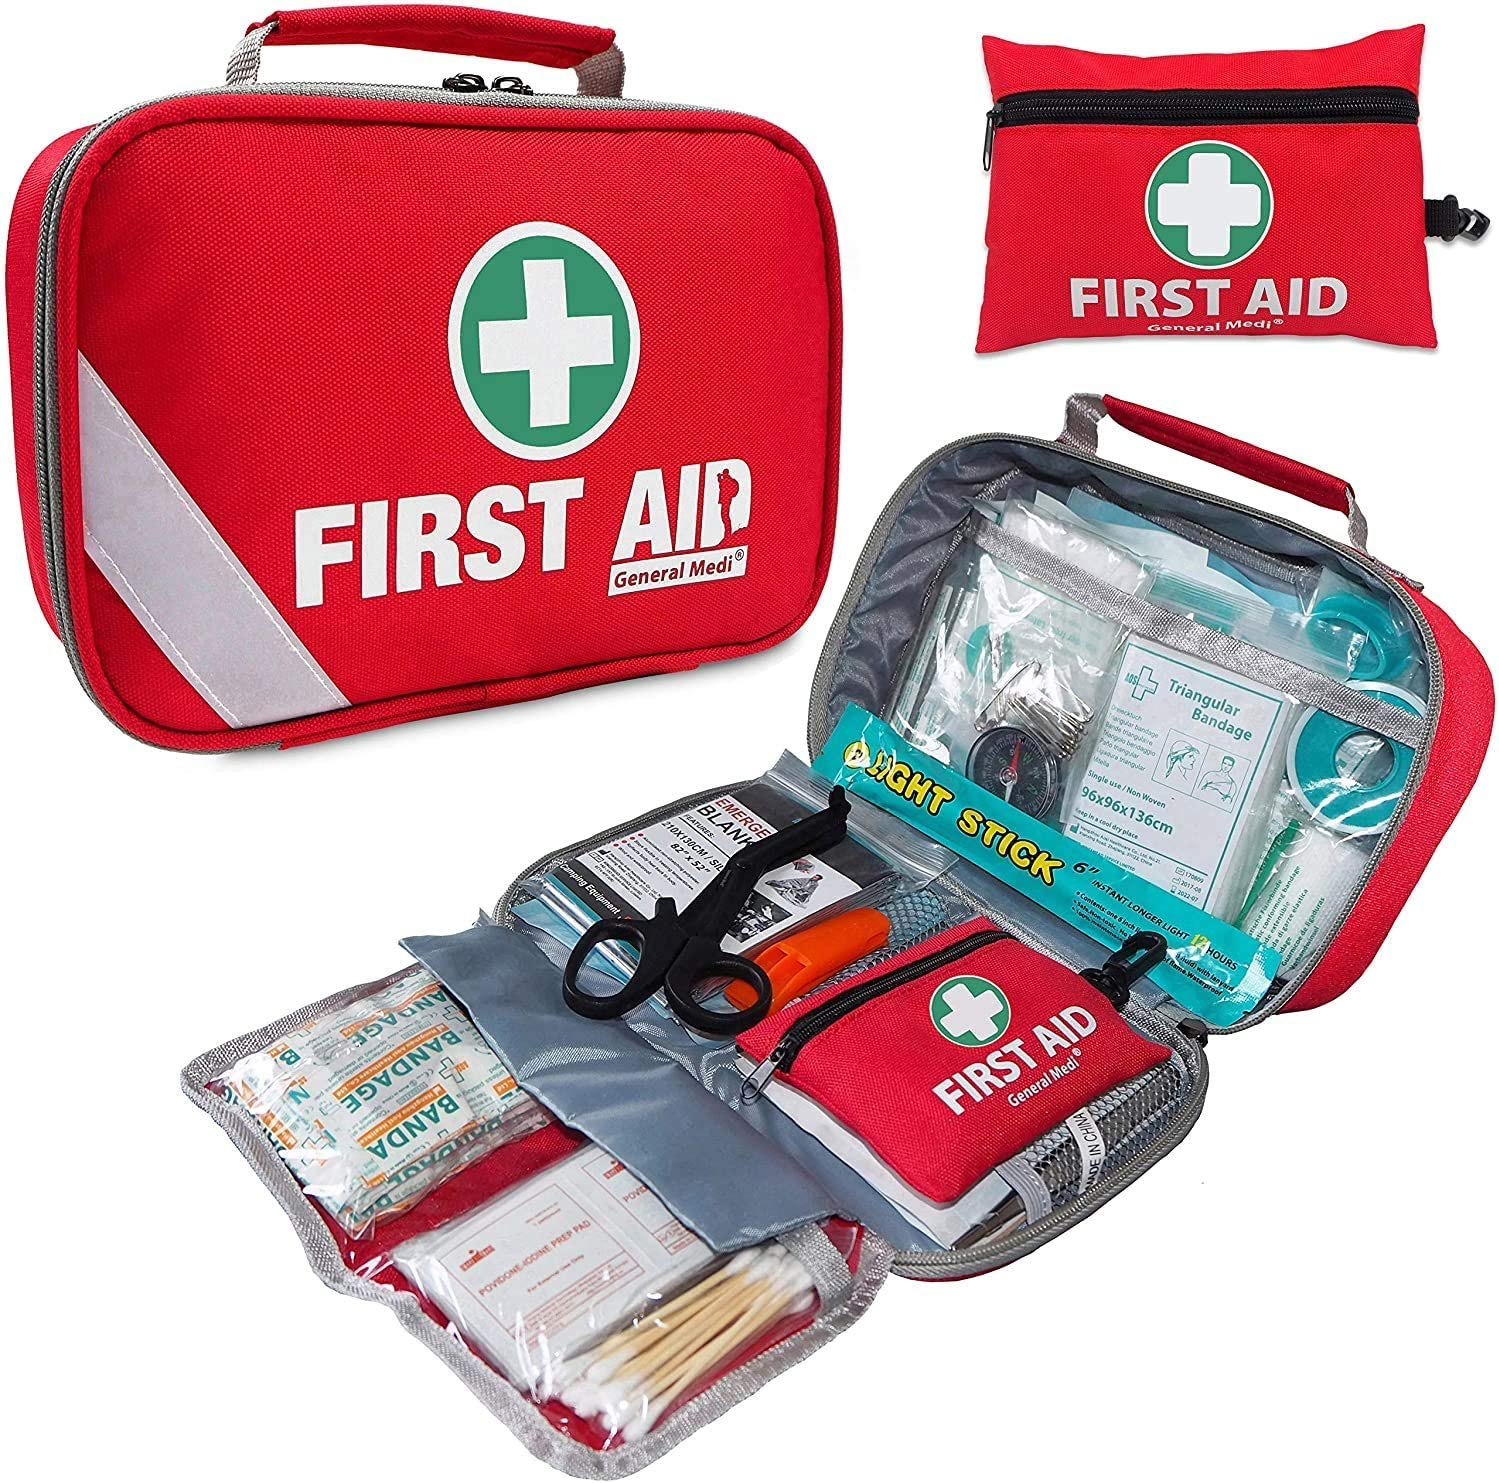 2-in-1 First Aid Kit (215 Piece) + Bonus 43 Piece Mini First Aid Kit -Includes Eyewash, Ice(Cold) Pack, Moleskin Pad and Emergency Blanket for Travel, Home, Office, Car, Workplace